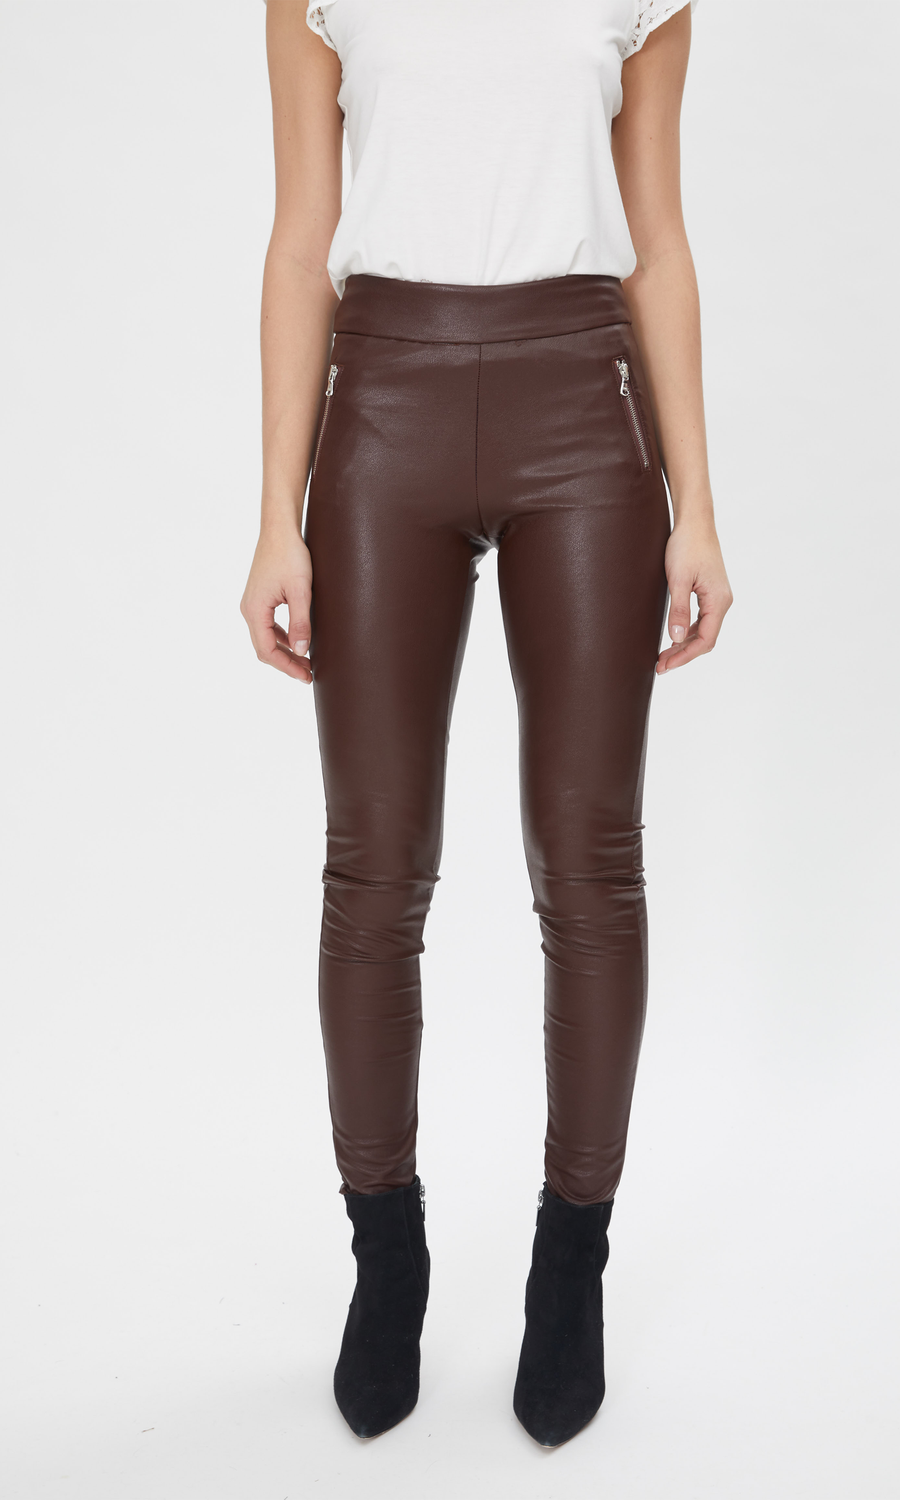 Generation Love Vegan Leather Leggings in Brown.